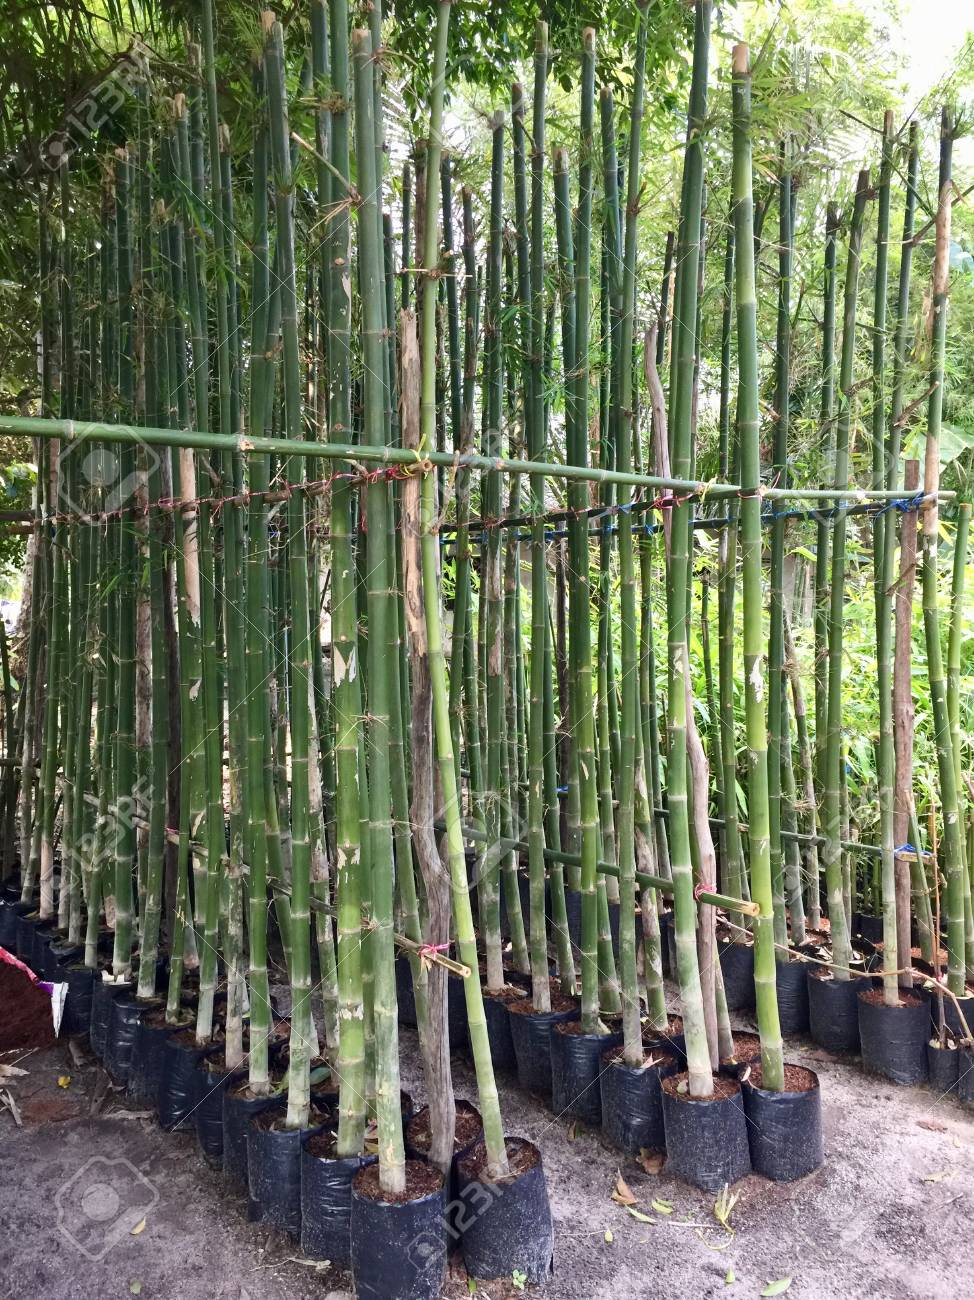 Bamboo Plants Stock Photo Picture And Royalty Free Image Image